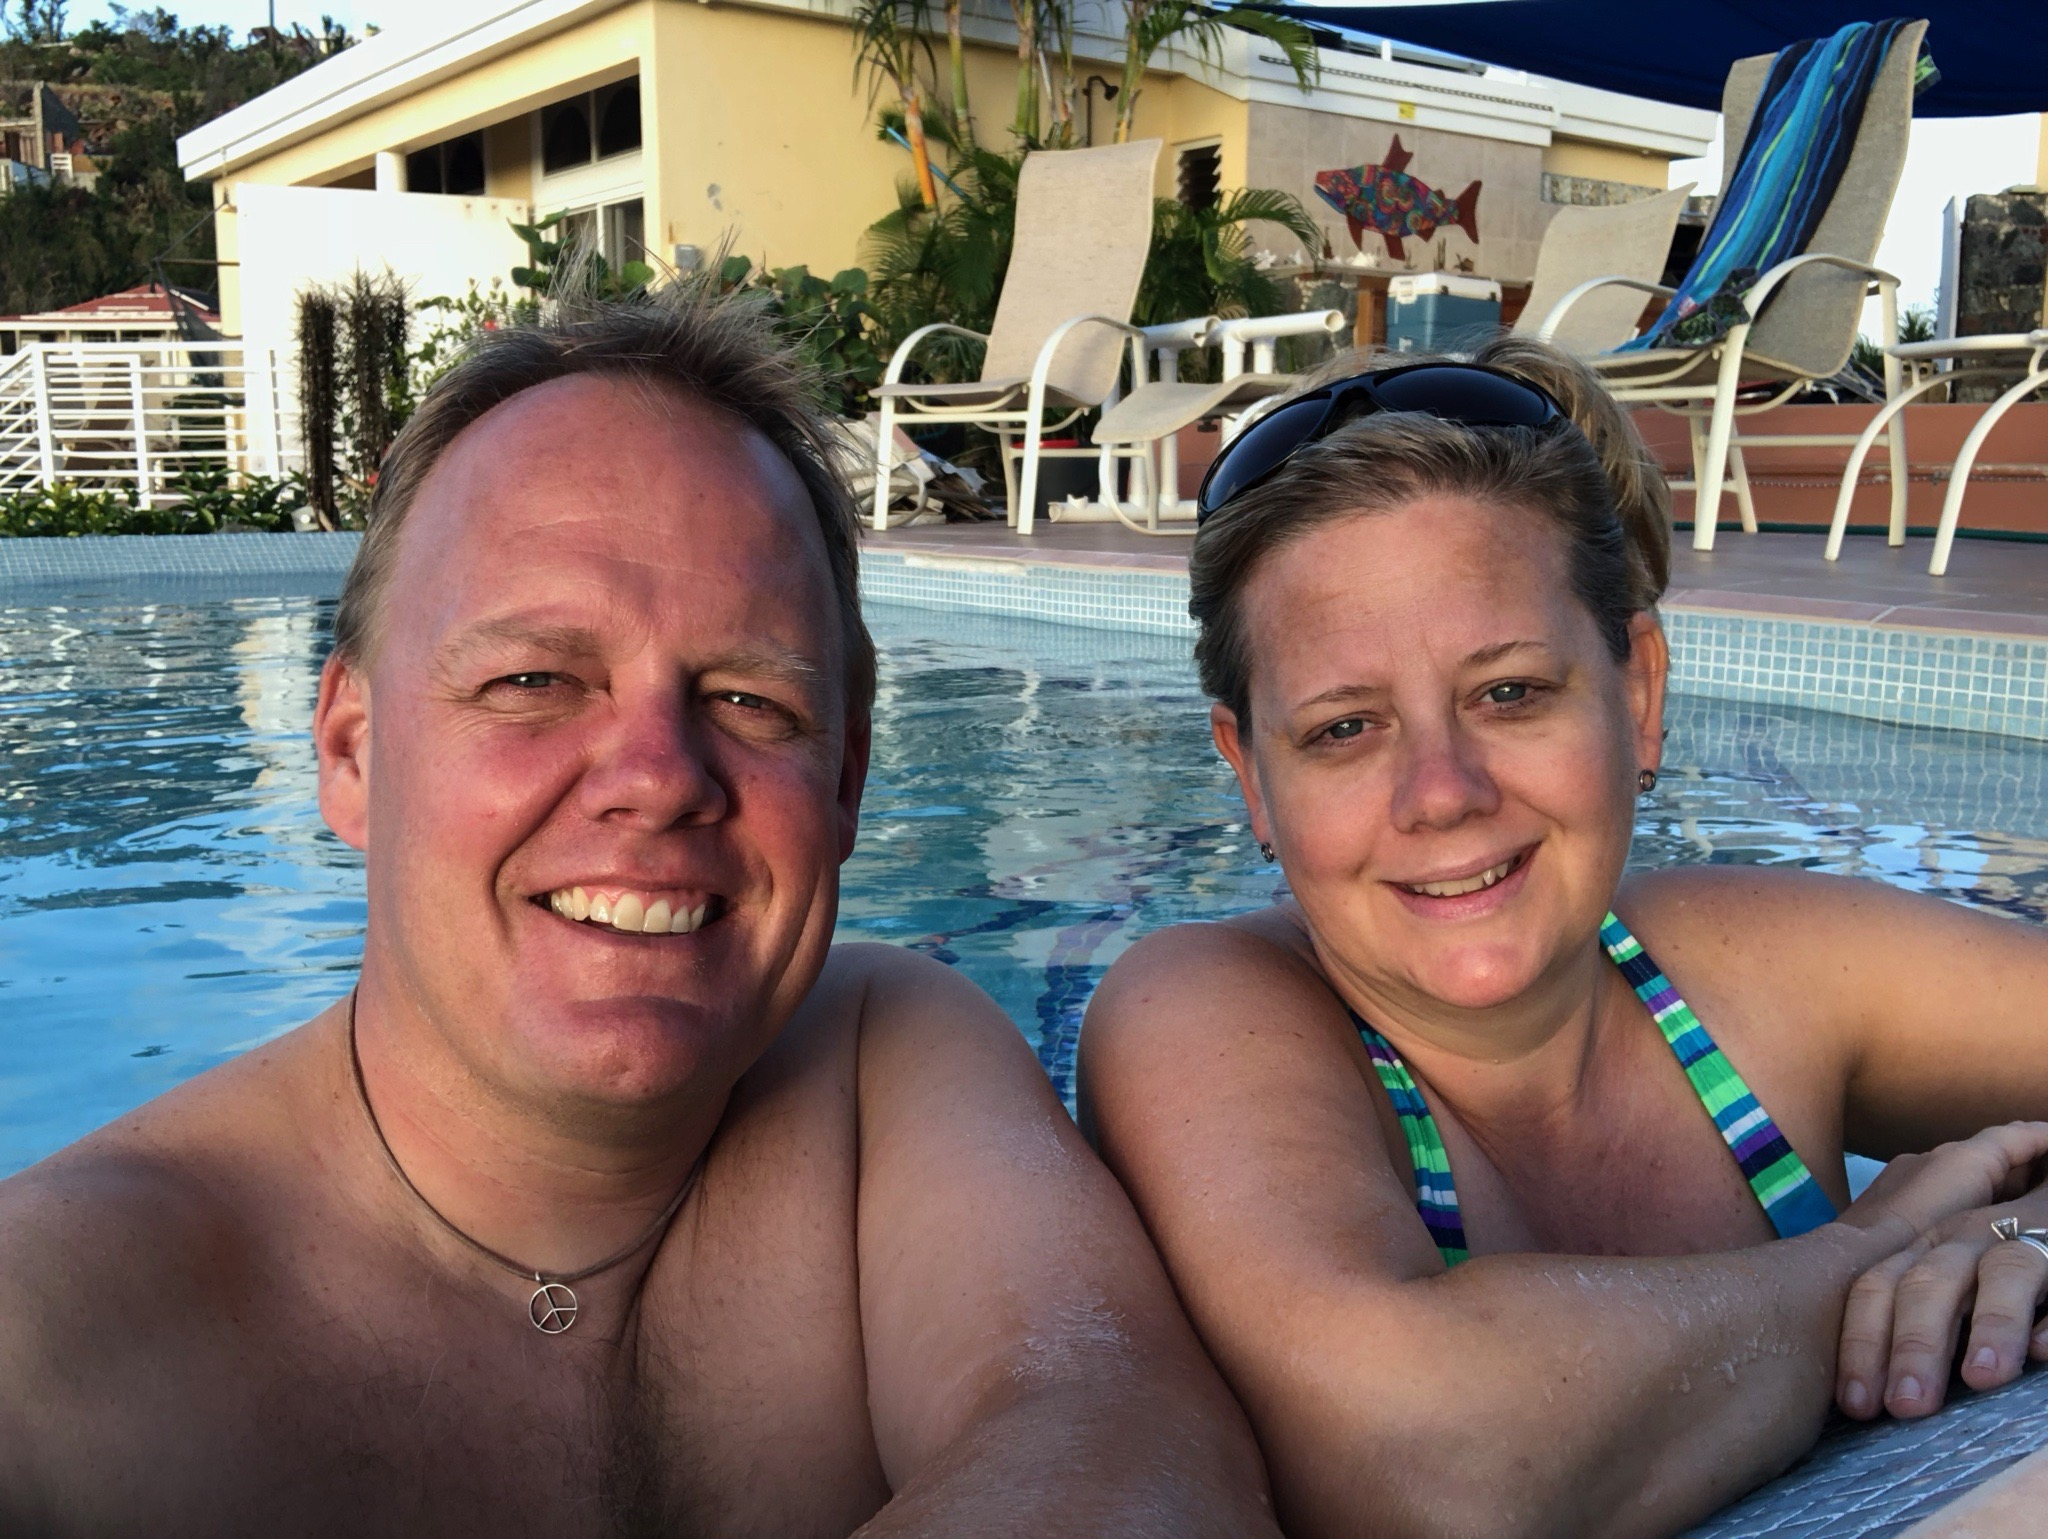 Steve & Carrie Butcher - Owners, Vacation Planners, Property Managers